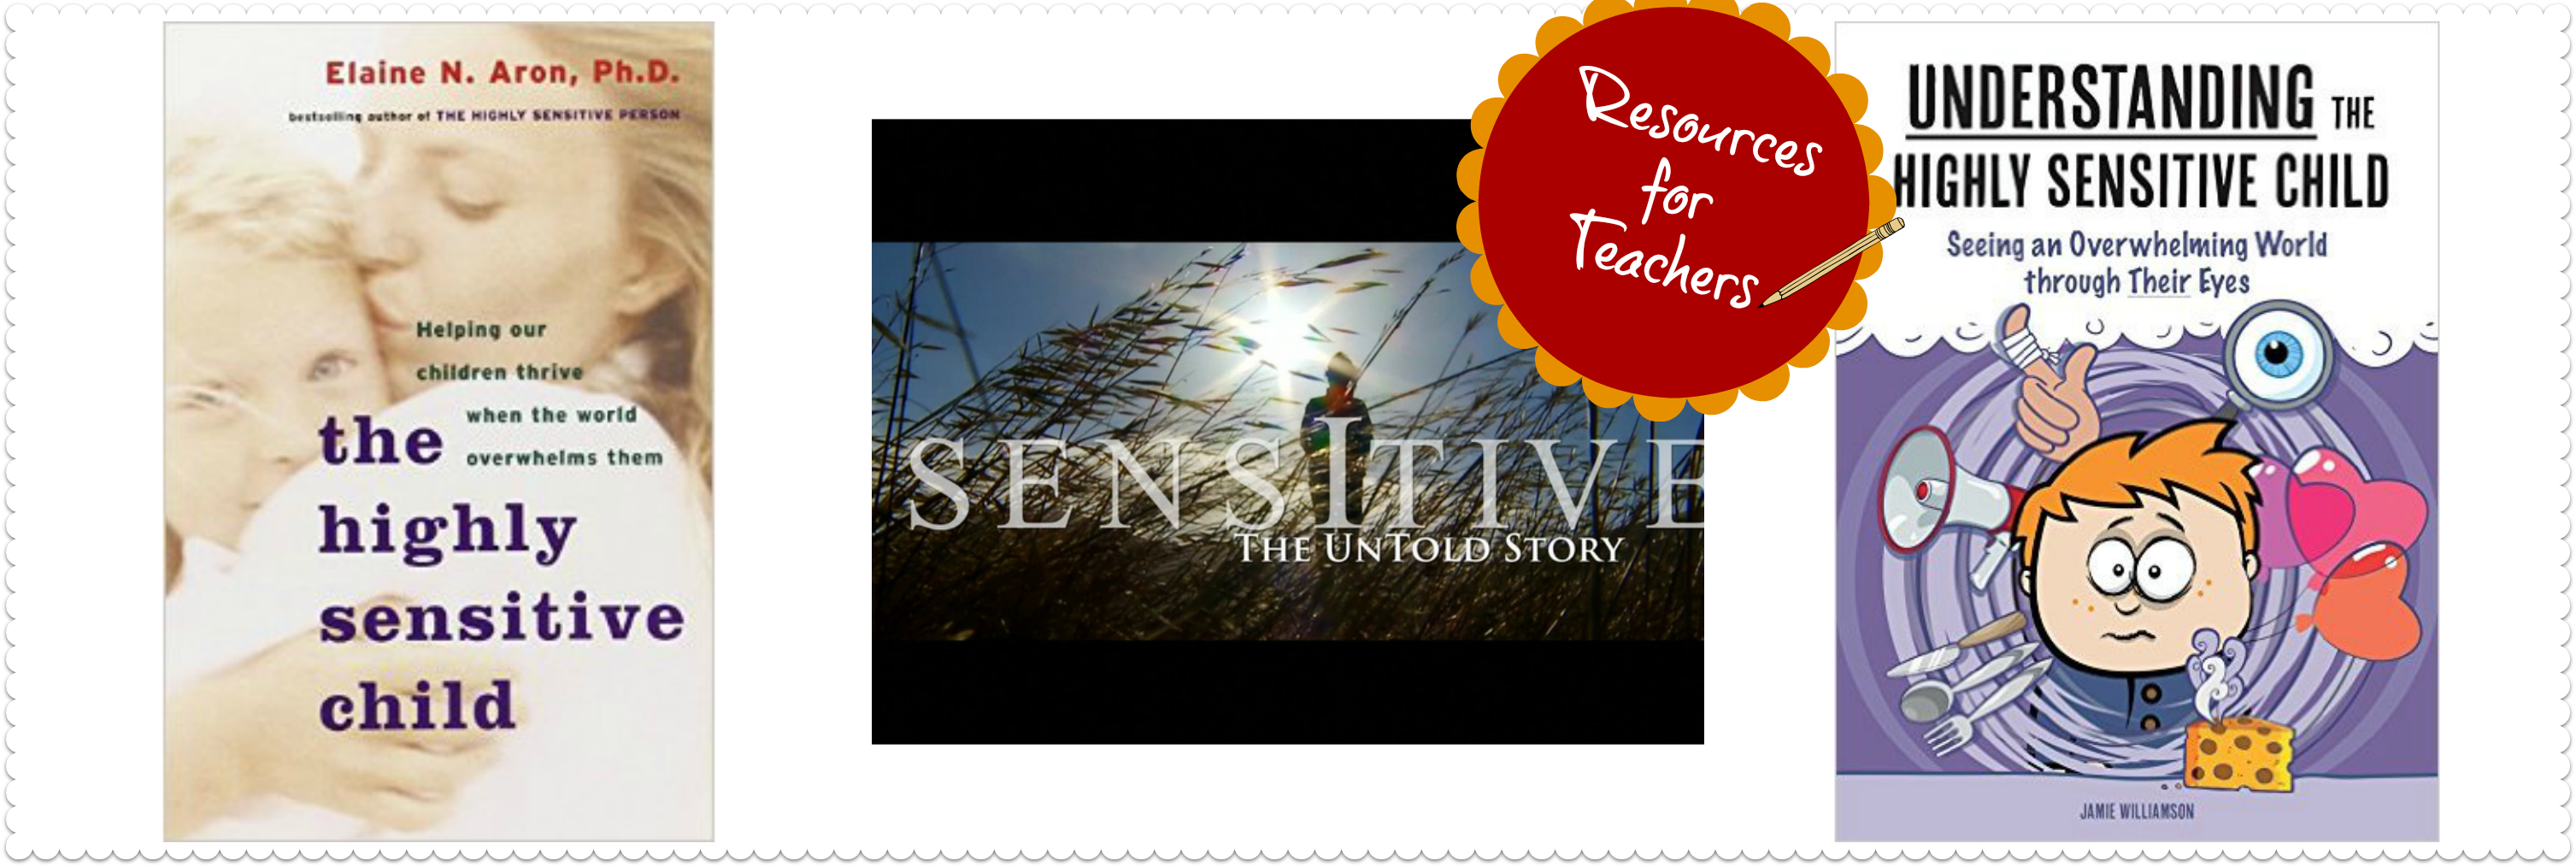 Resources for Teachers, Highly Sensitive Children